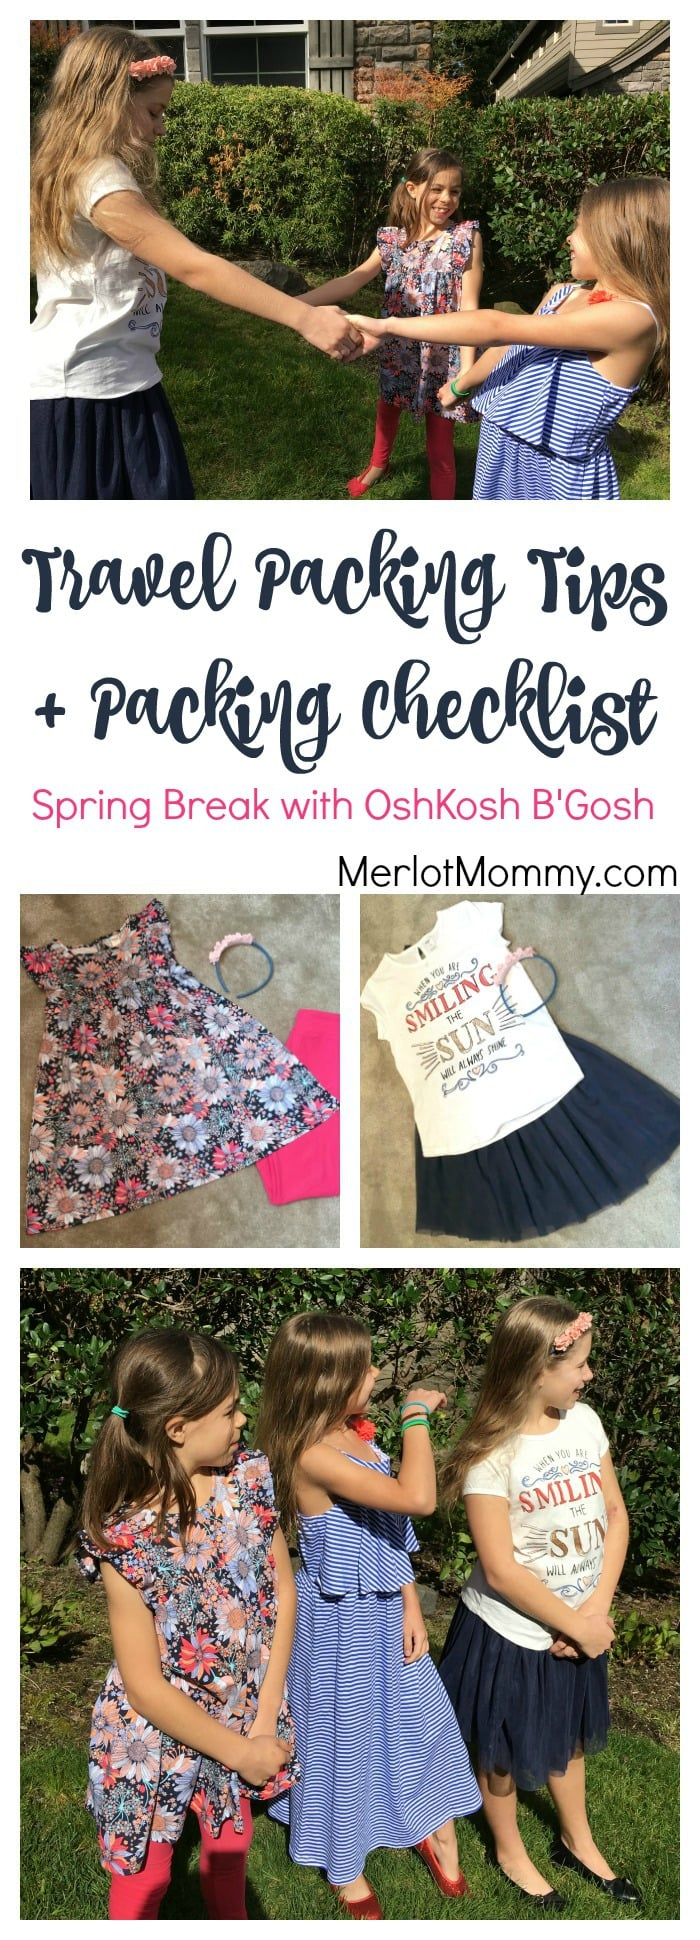 Travel Packing Tips and Packing Checklist + OshKosh Gift Card Giveaway